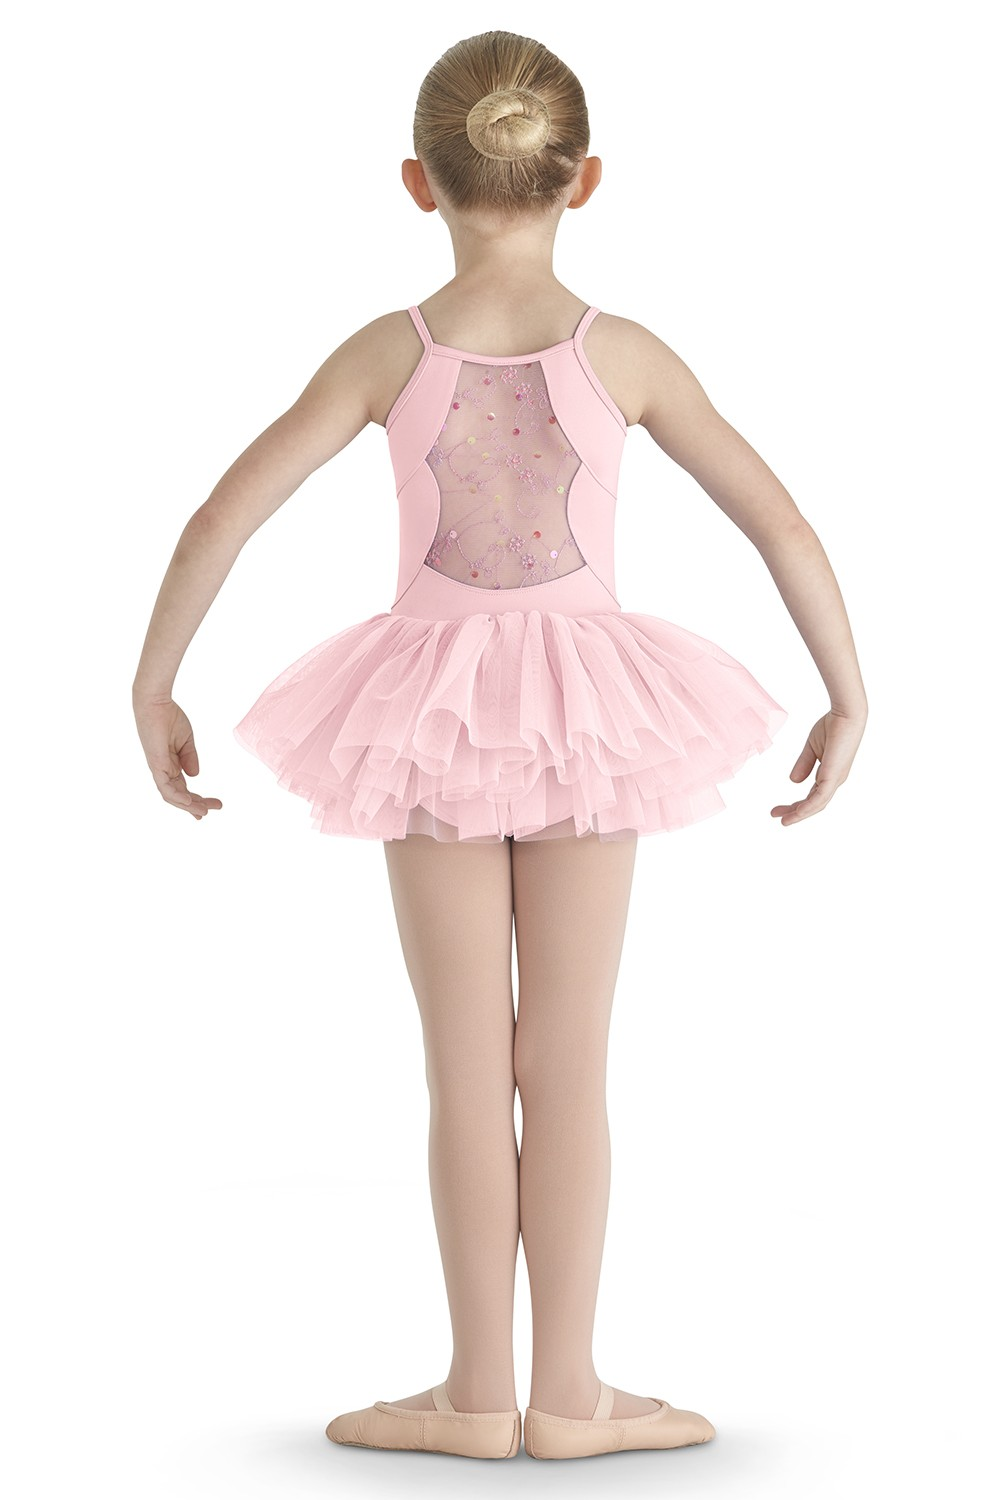 Waiola Children's Dance Leotards